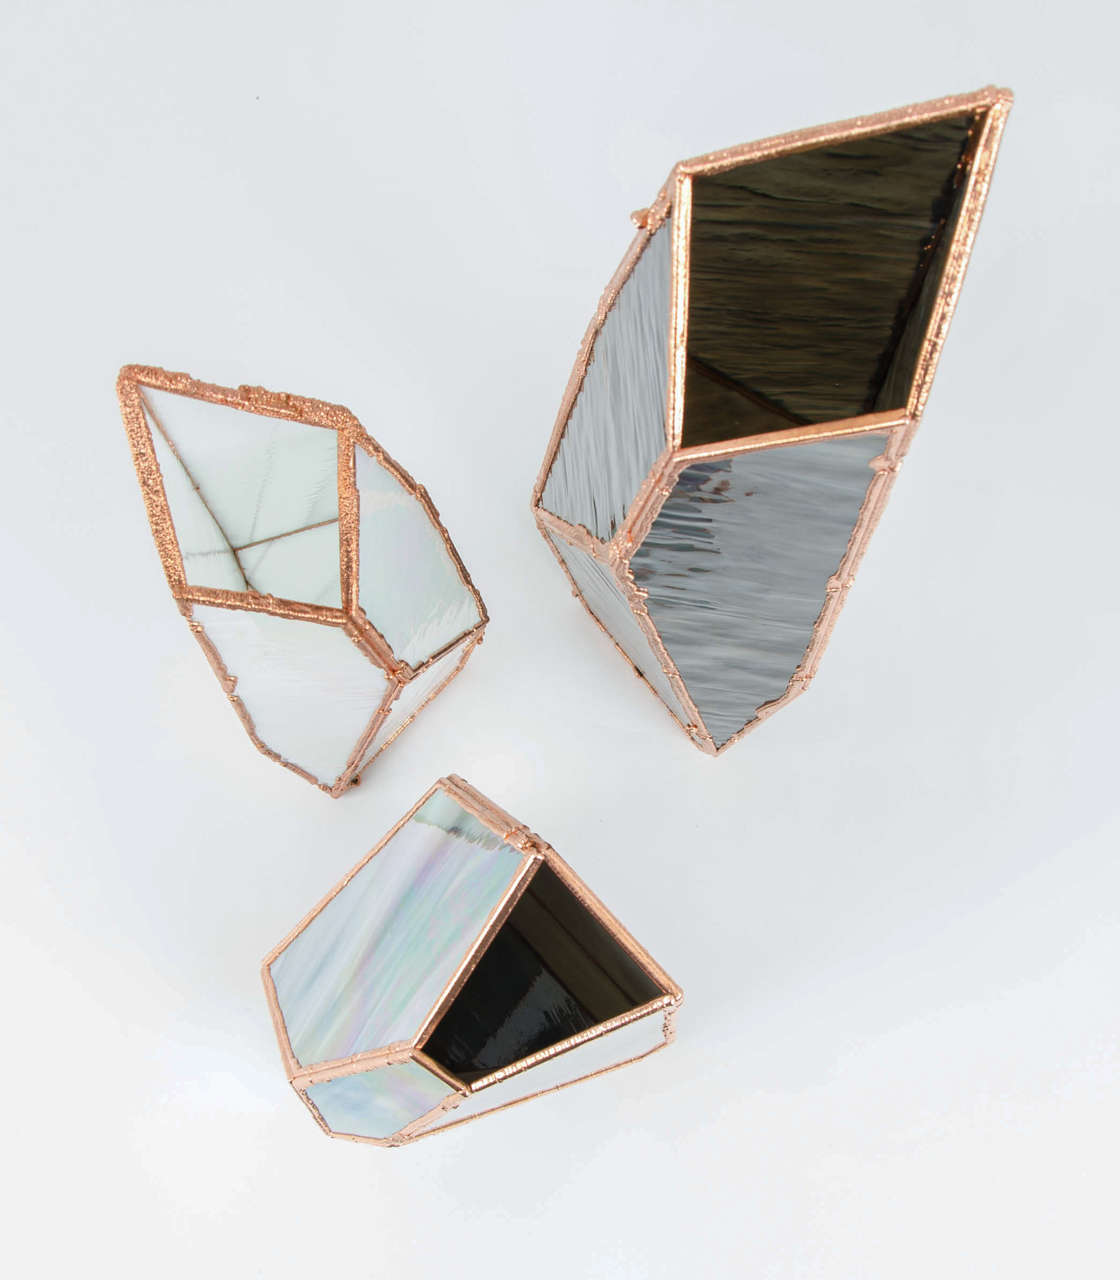 OverNight Vases, Unique Glass and Copper Mixed Colored Vases by Odd Matter For Sale 3